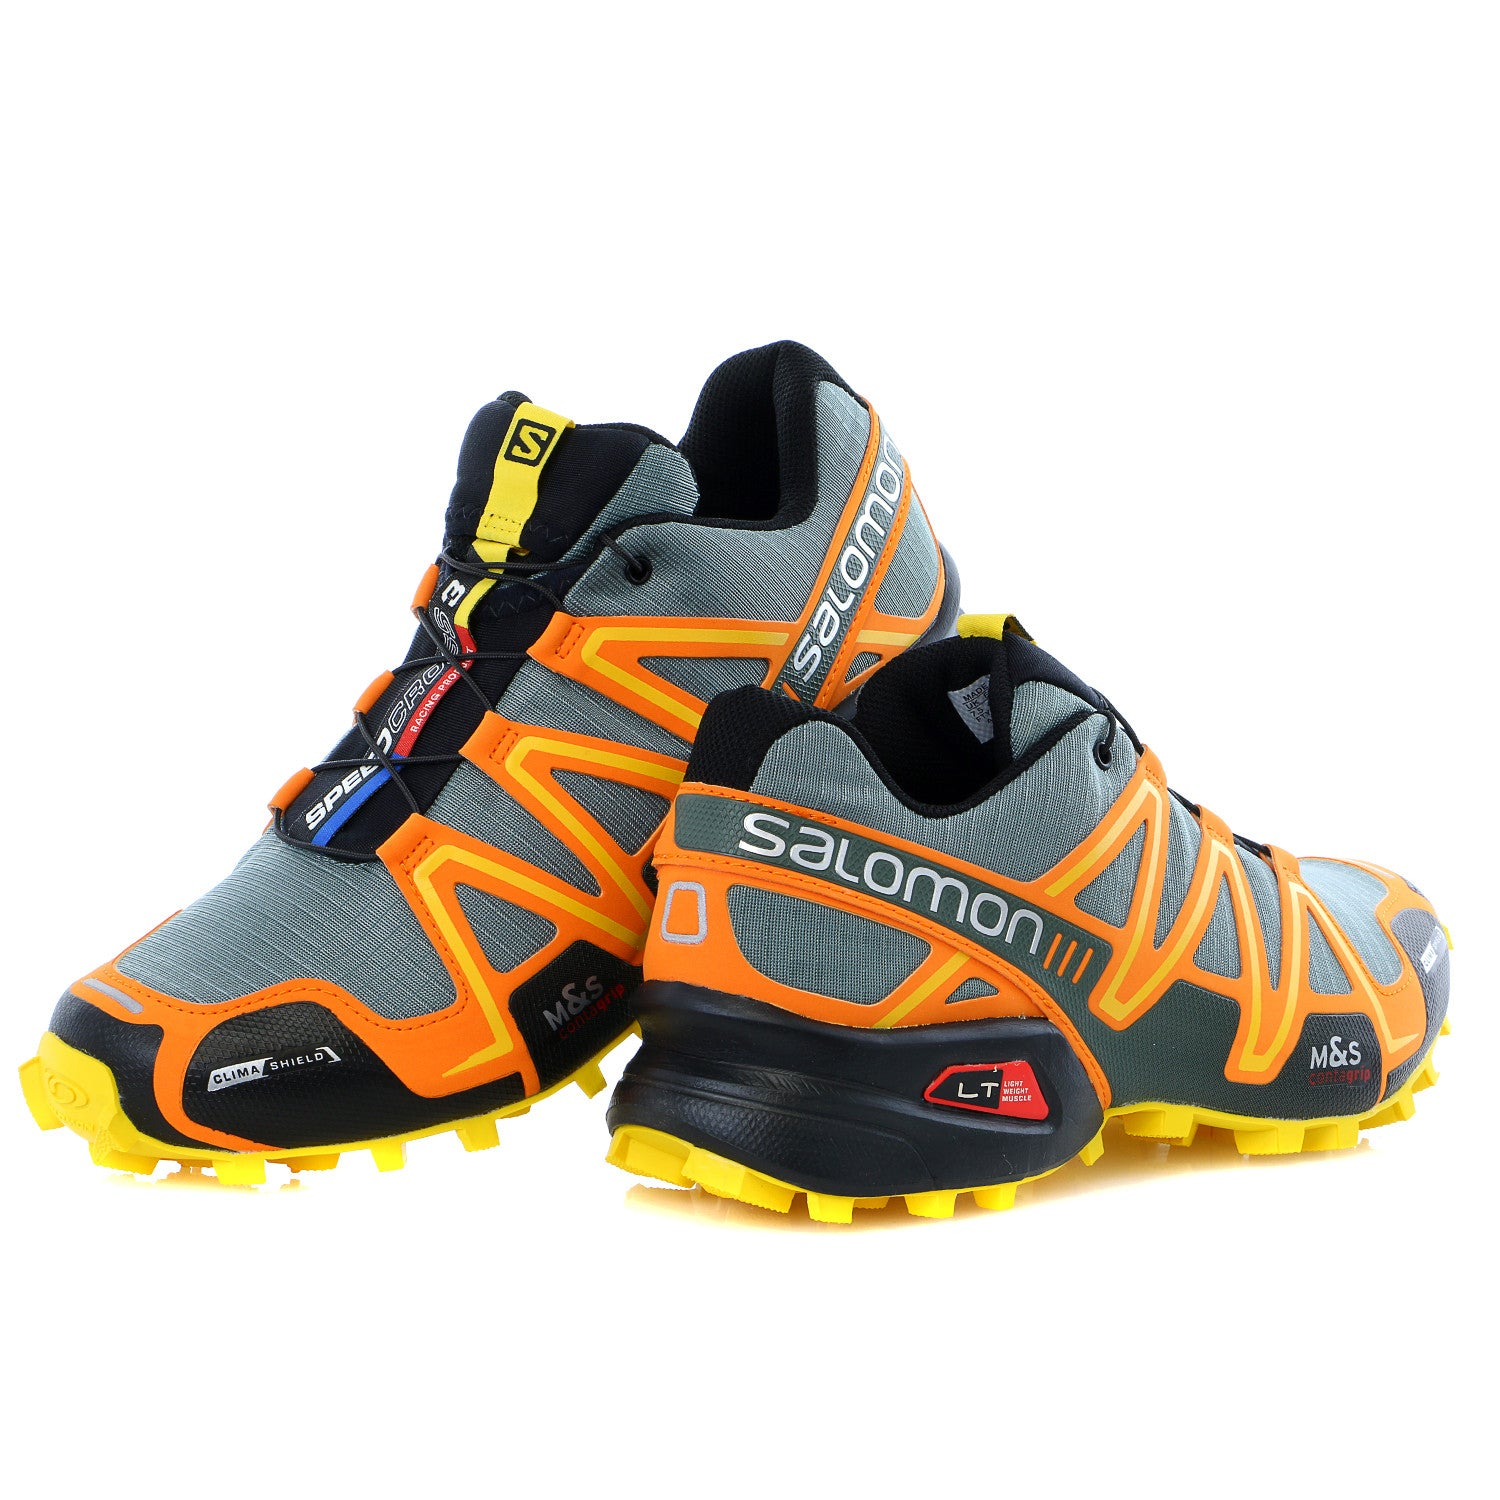 46270e8fce3f Salomon Speedcross 3 CS Trail Running Shoe - Men s - Shoplifestyle